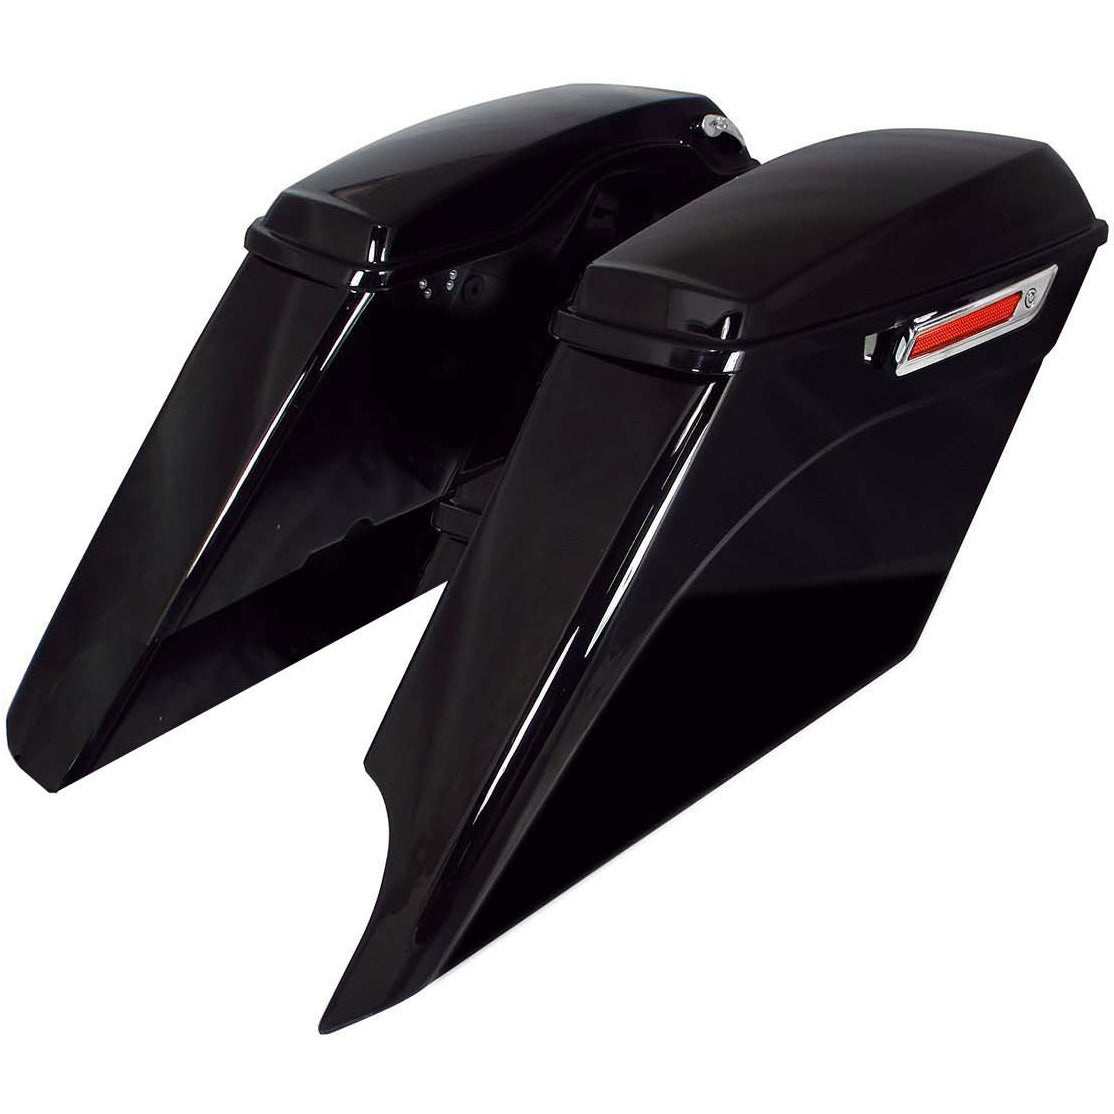 Bagger Brothers Saddlebag Complete Extended Kit 5 Down 5 Out Right Side Cut Outs Fits 2014-2020 Harley-Davidson FL Models